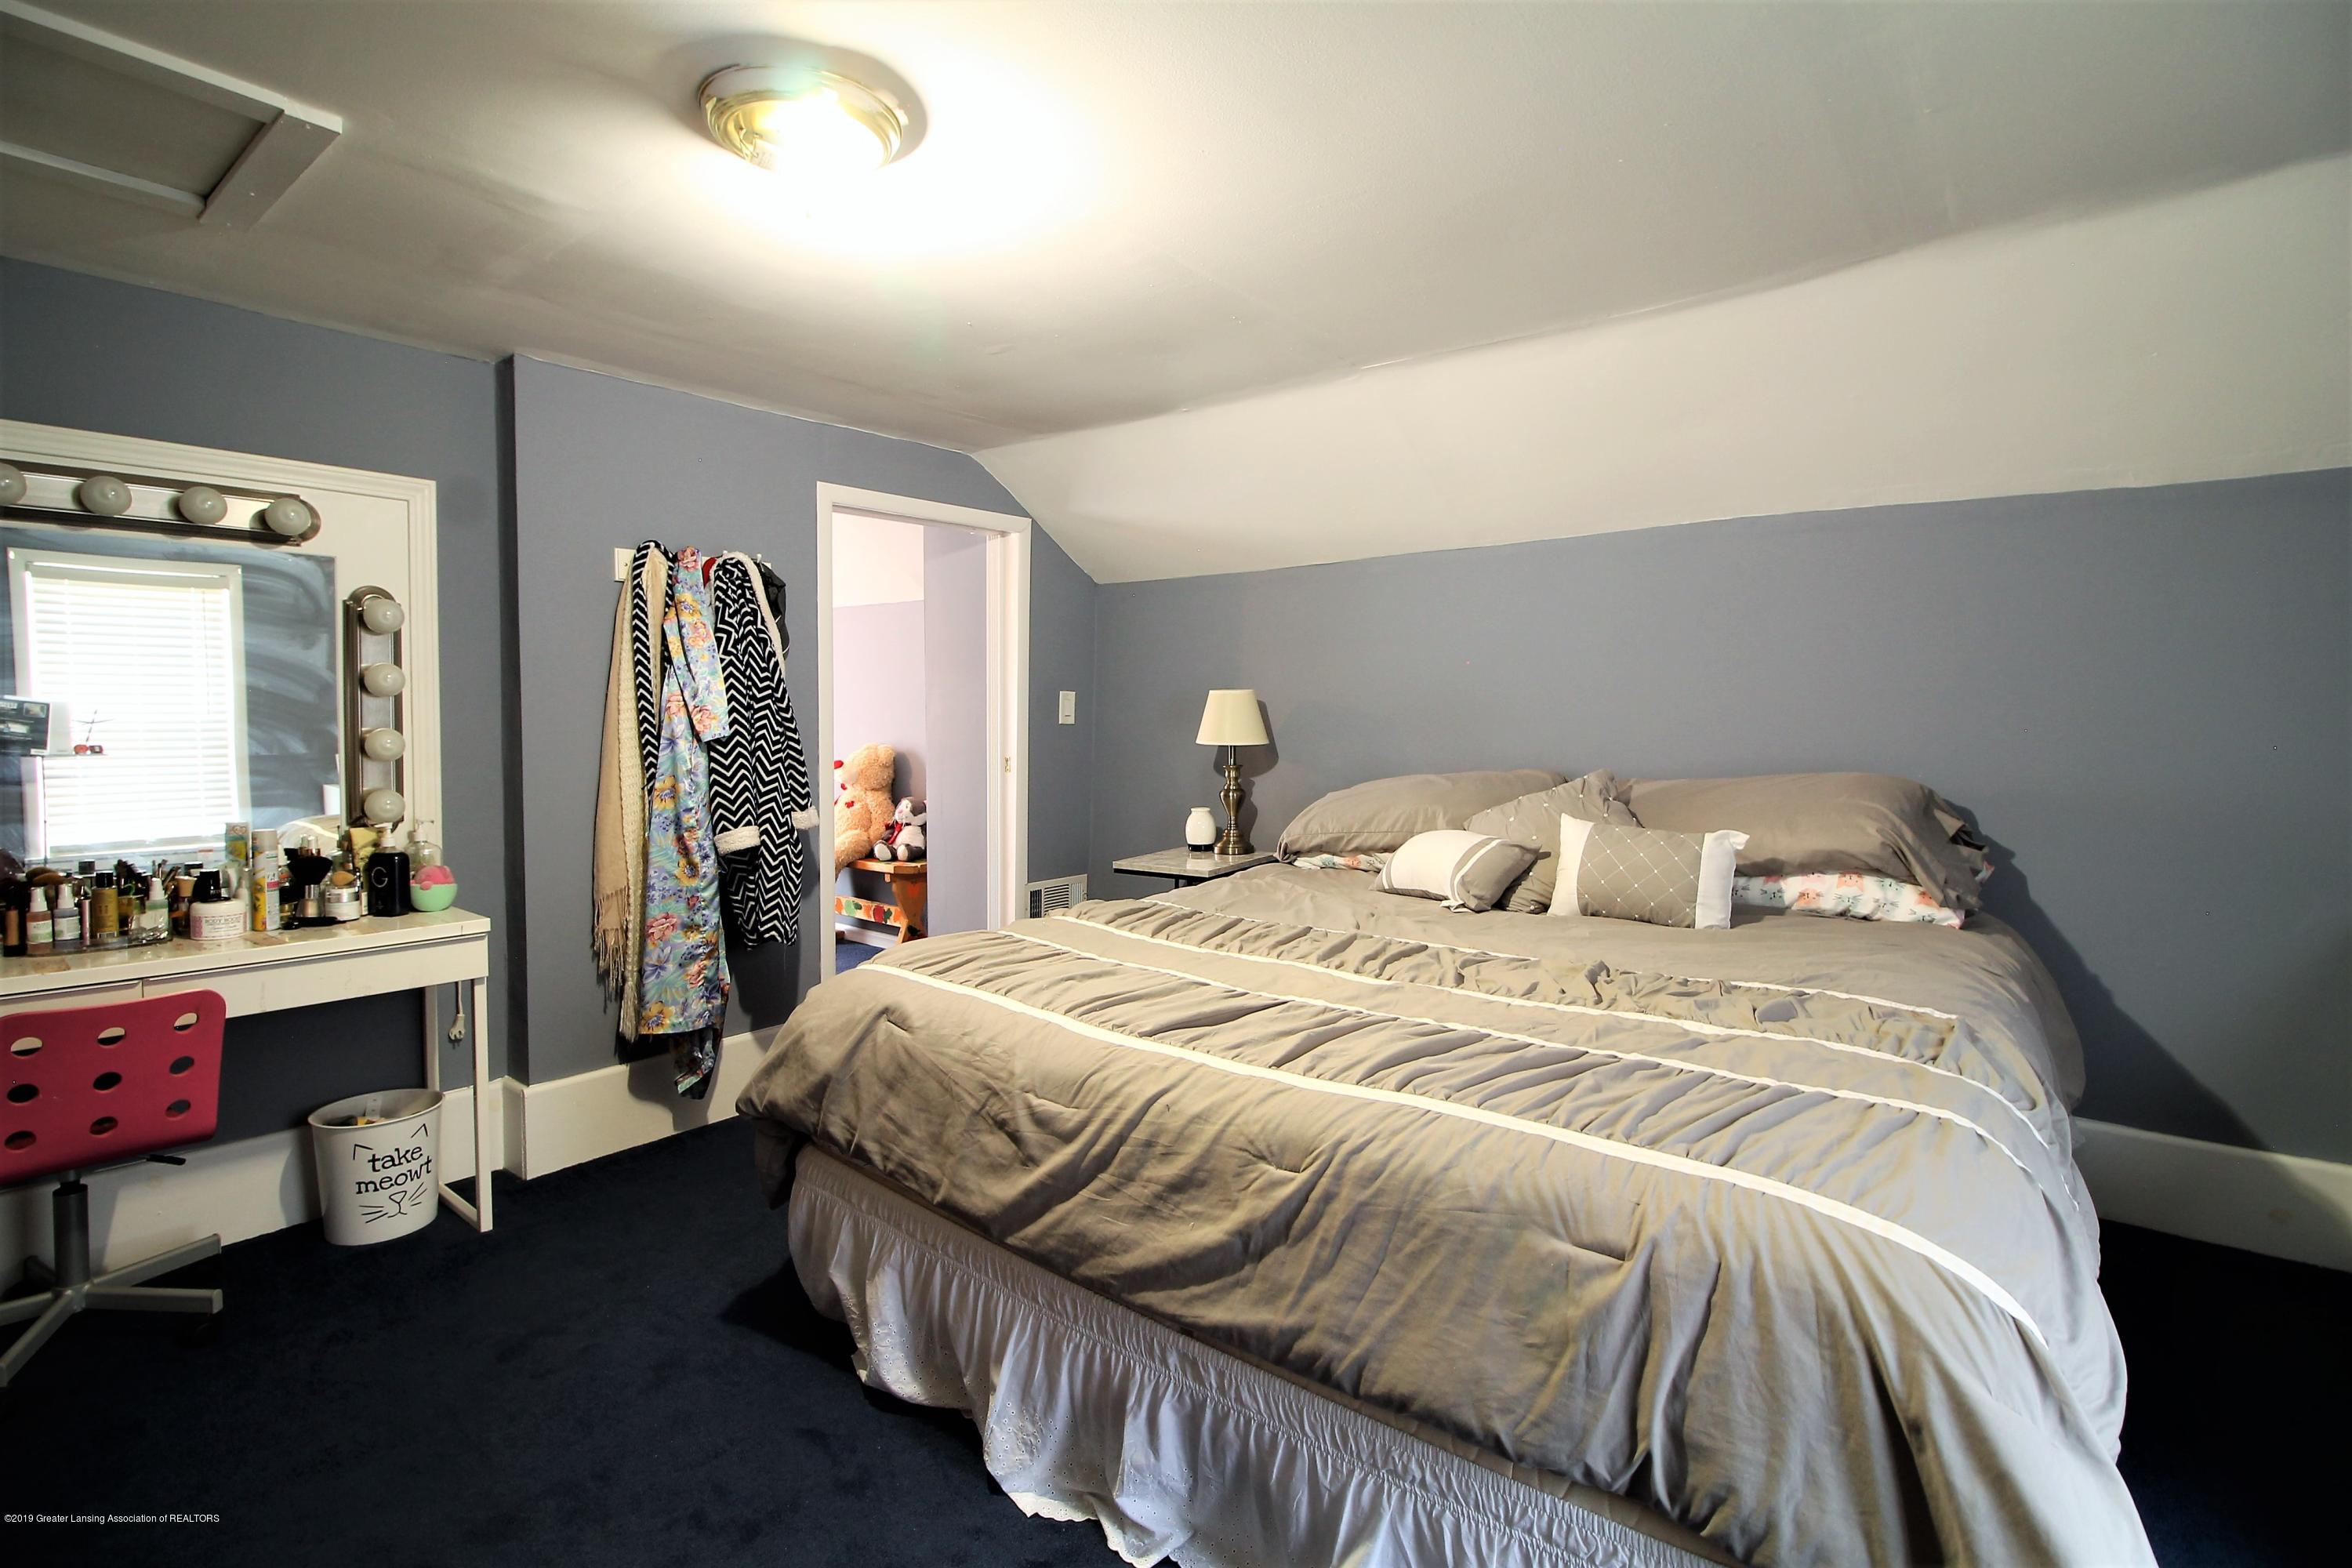 538 Bentley St - bedroom #1 - 14